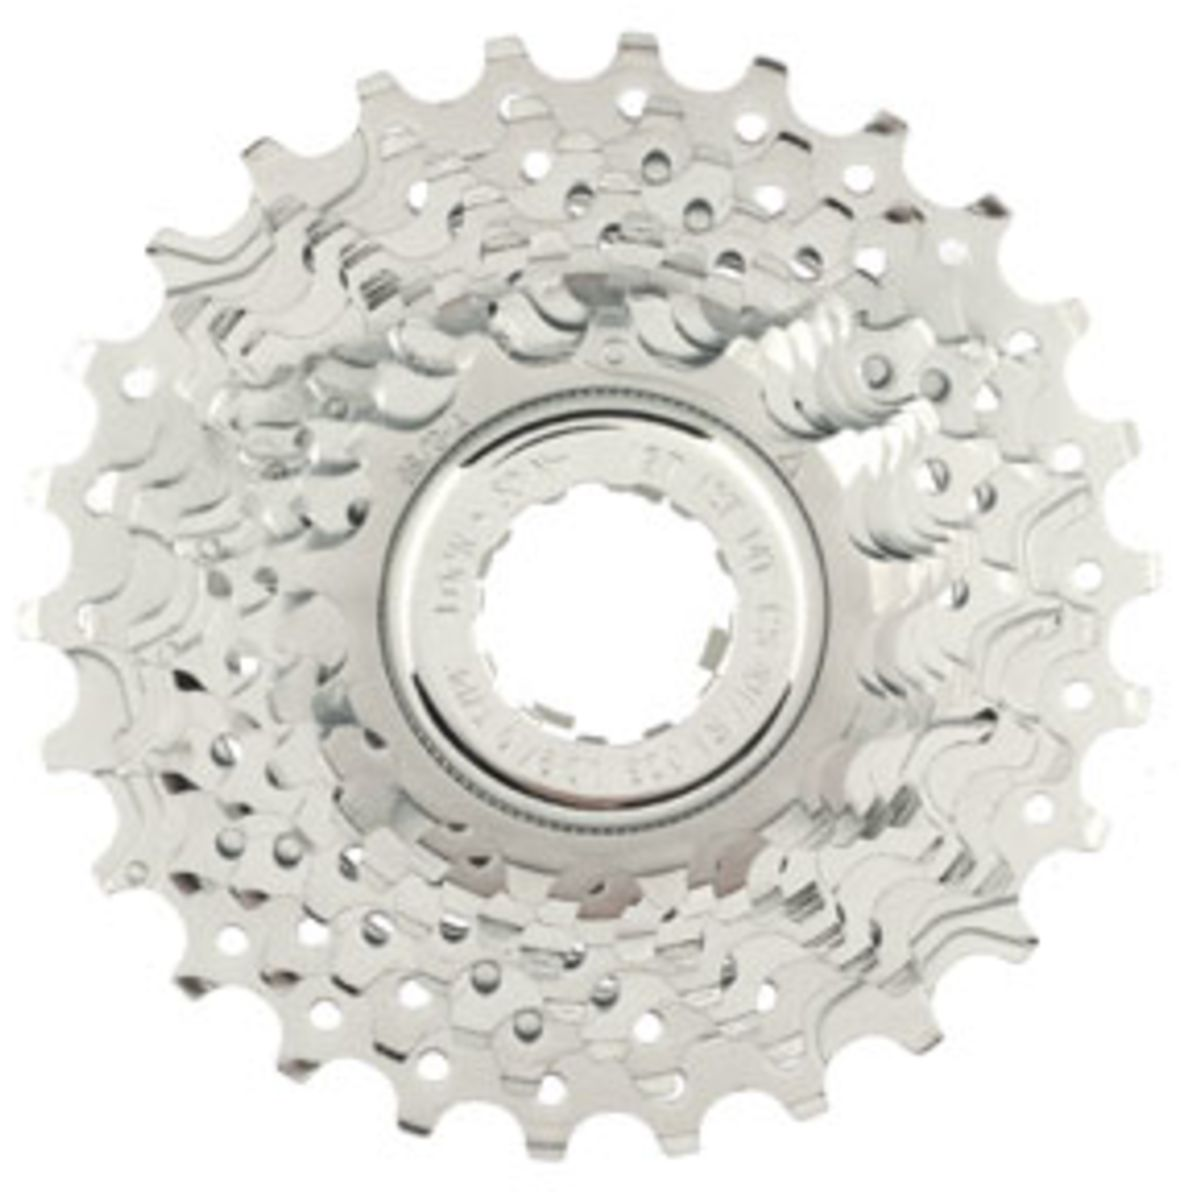 Veloce Ultra-Drive 9-speed cassette 13-26 ratio